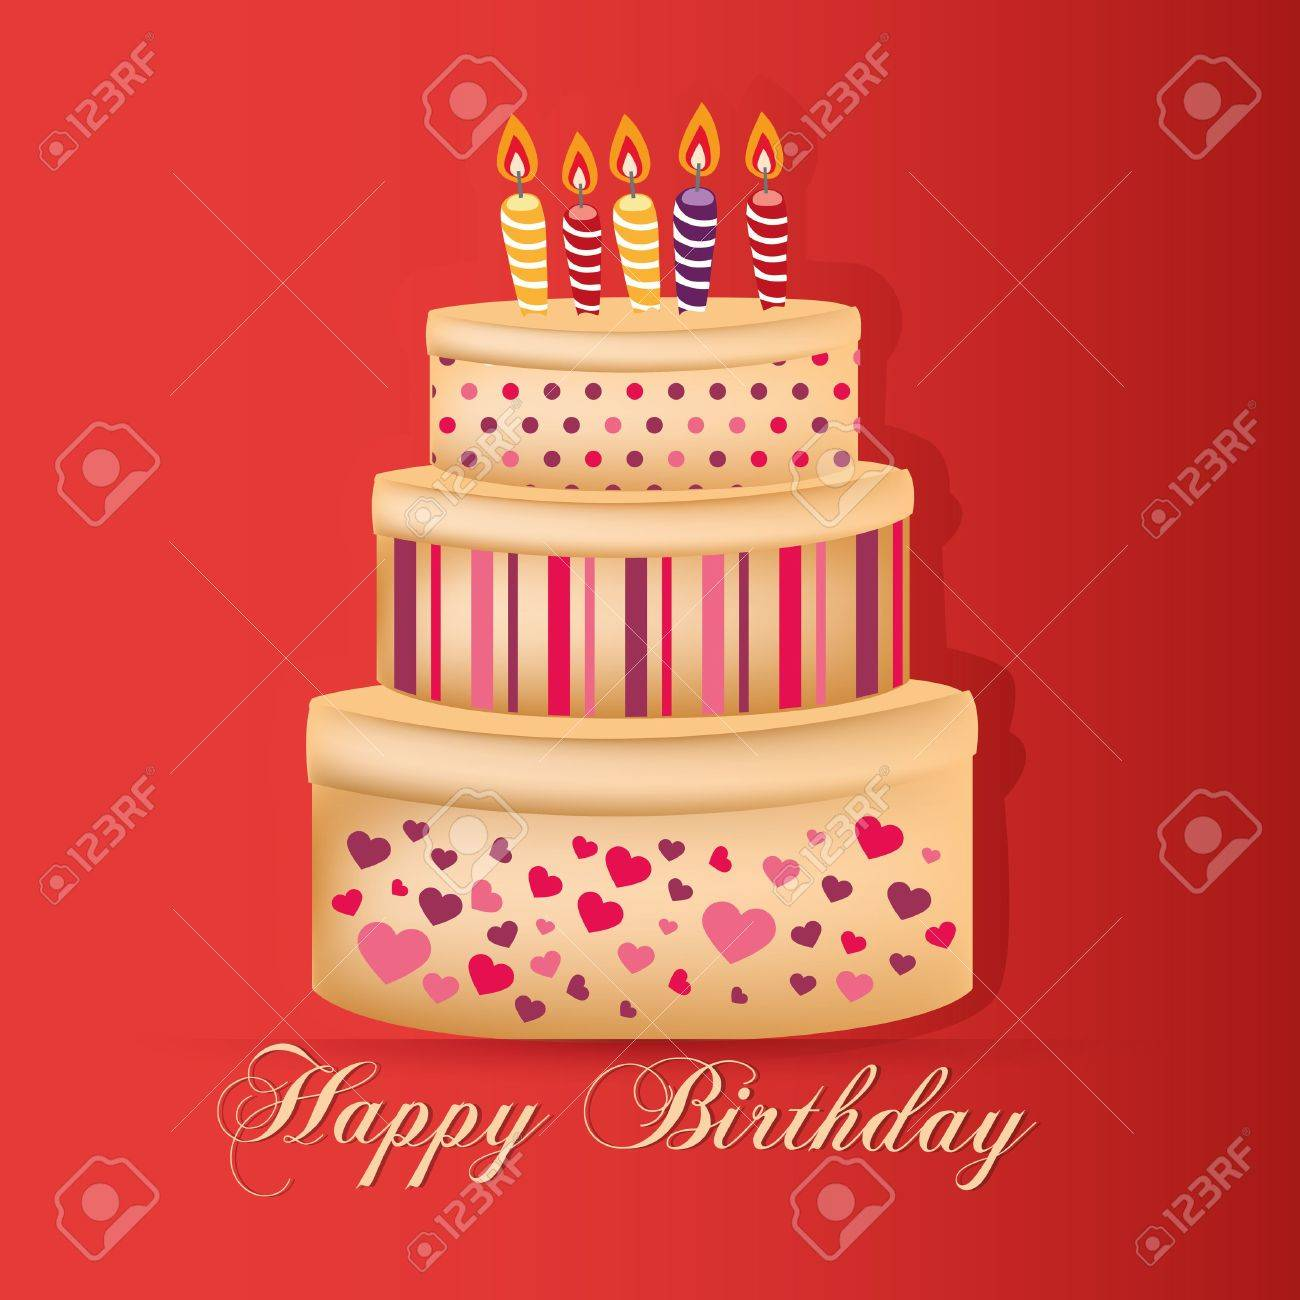 A Delicious Big Cake With Some Candles And Text For Happy Birthday Stock Vector